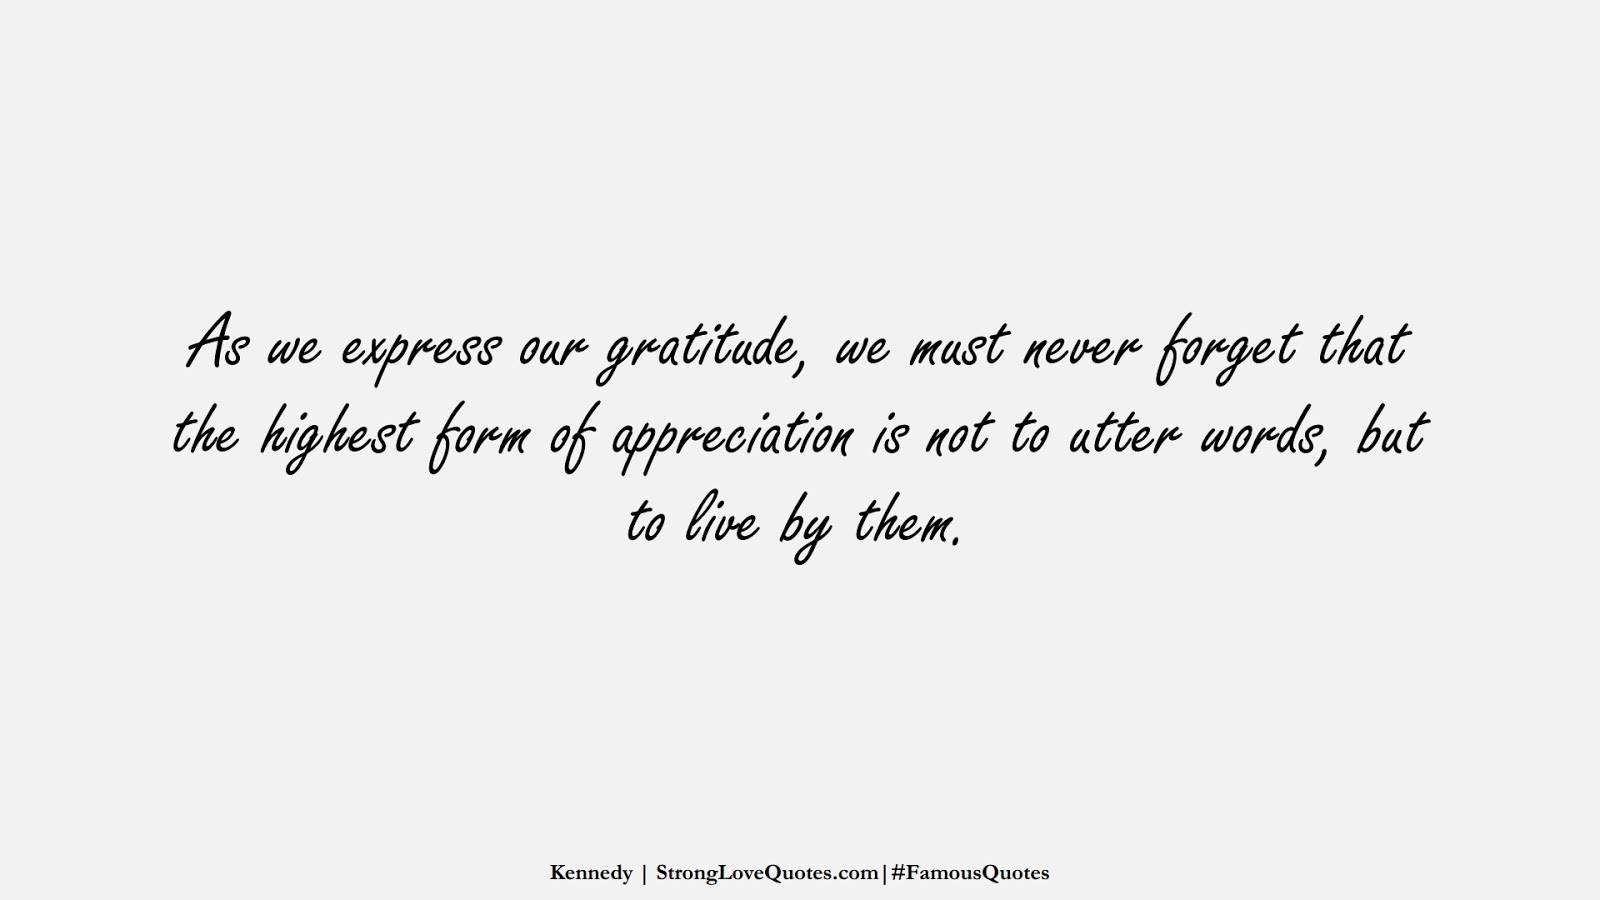 As we express our gratitude, we must never forget that the highest form of appreciation is not to utter words, but to live by them. (Kennedy);  #FamousQuotes